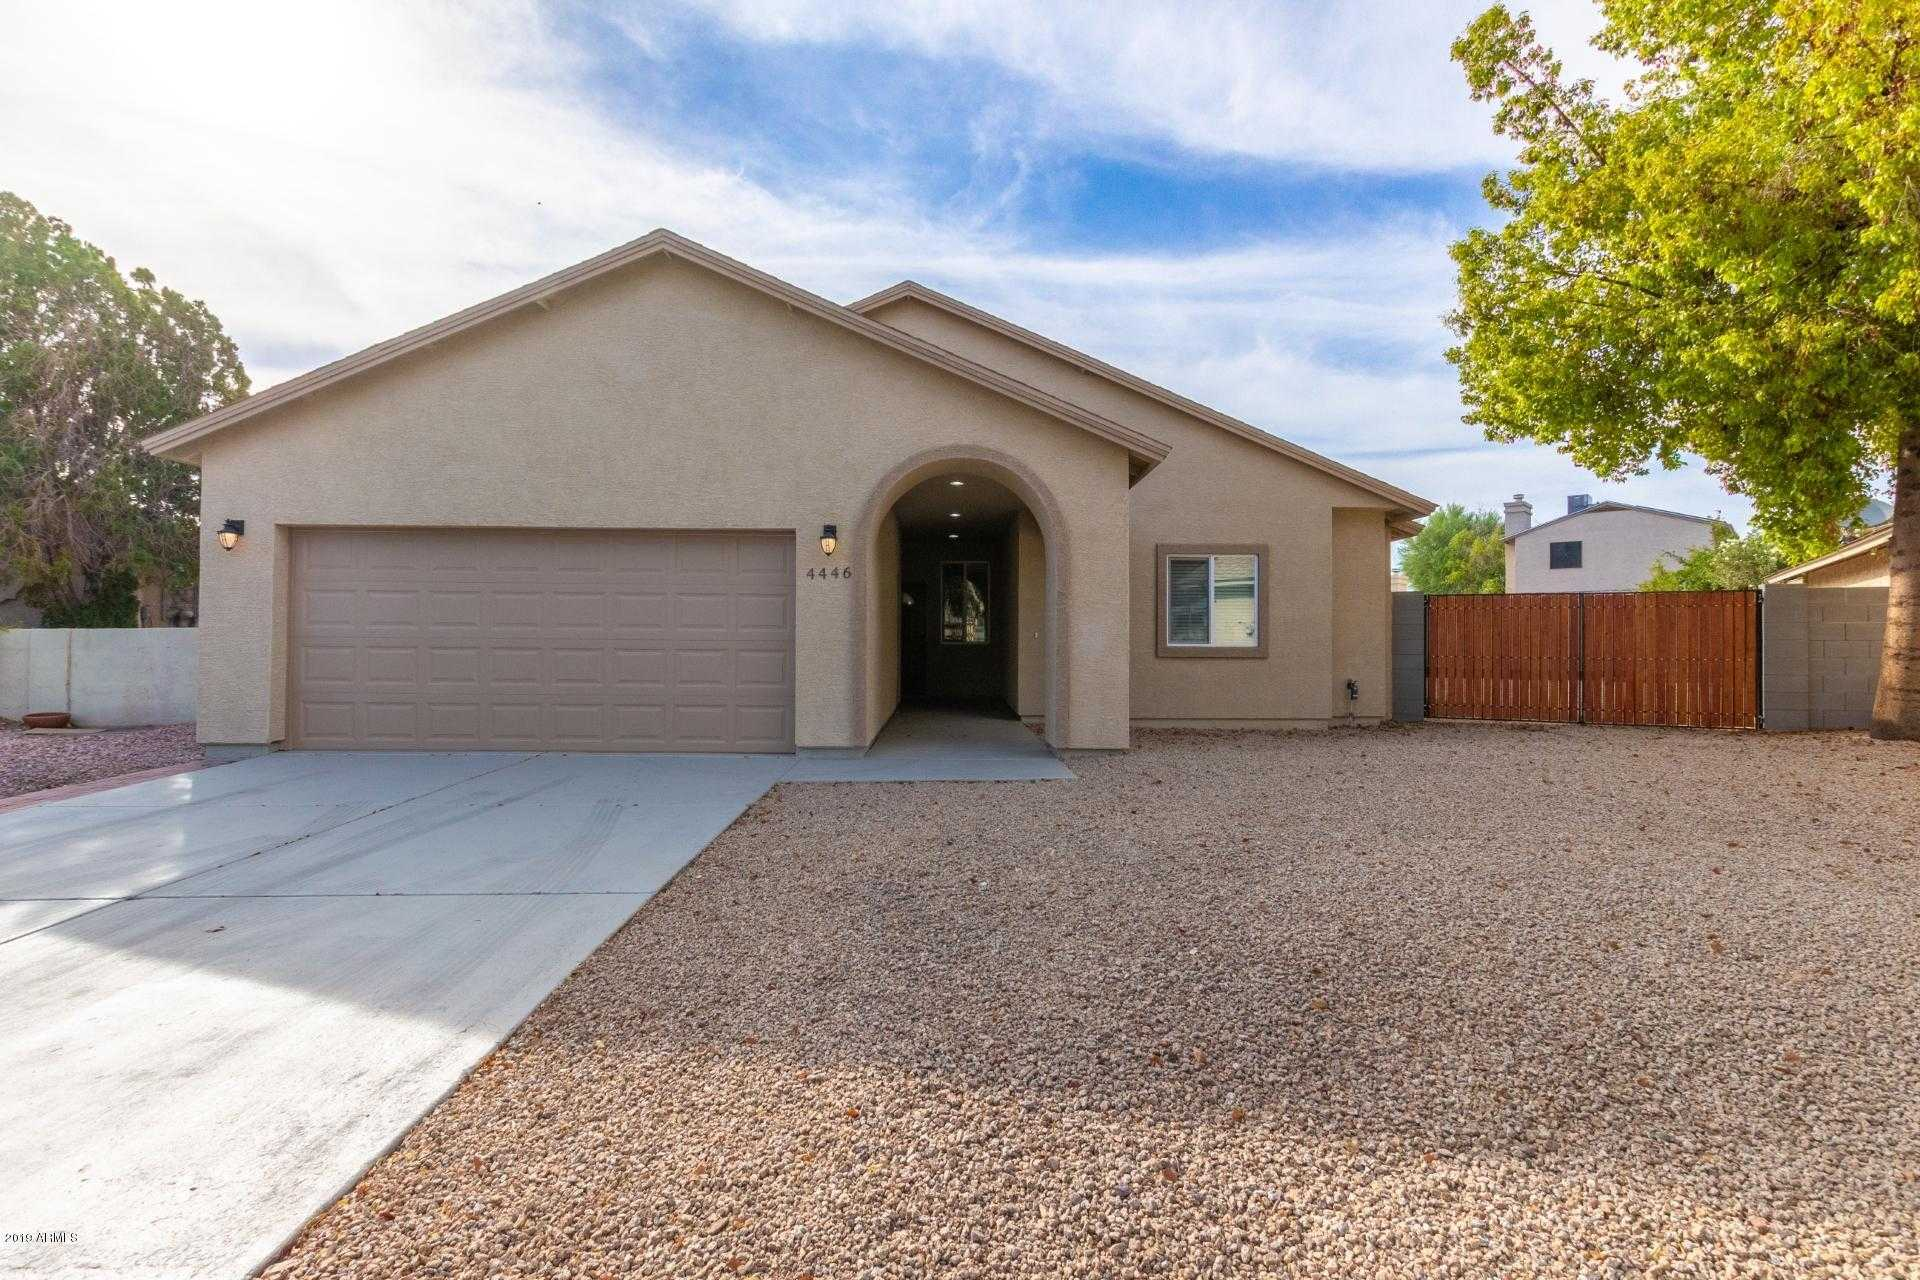 $324,000 - 4Br/3Ba - Home for Sale in Village At Canyon View Lot 1-187 Tr A-h, Glendale